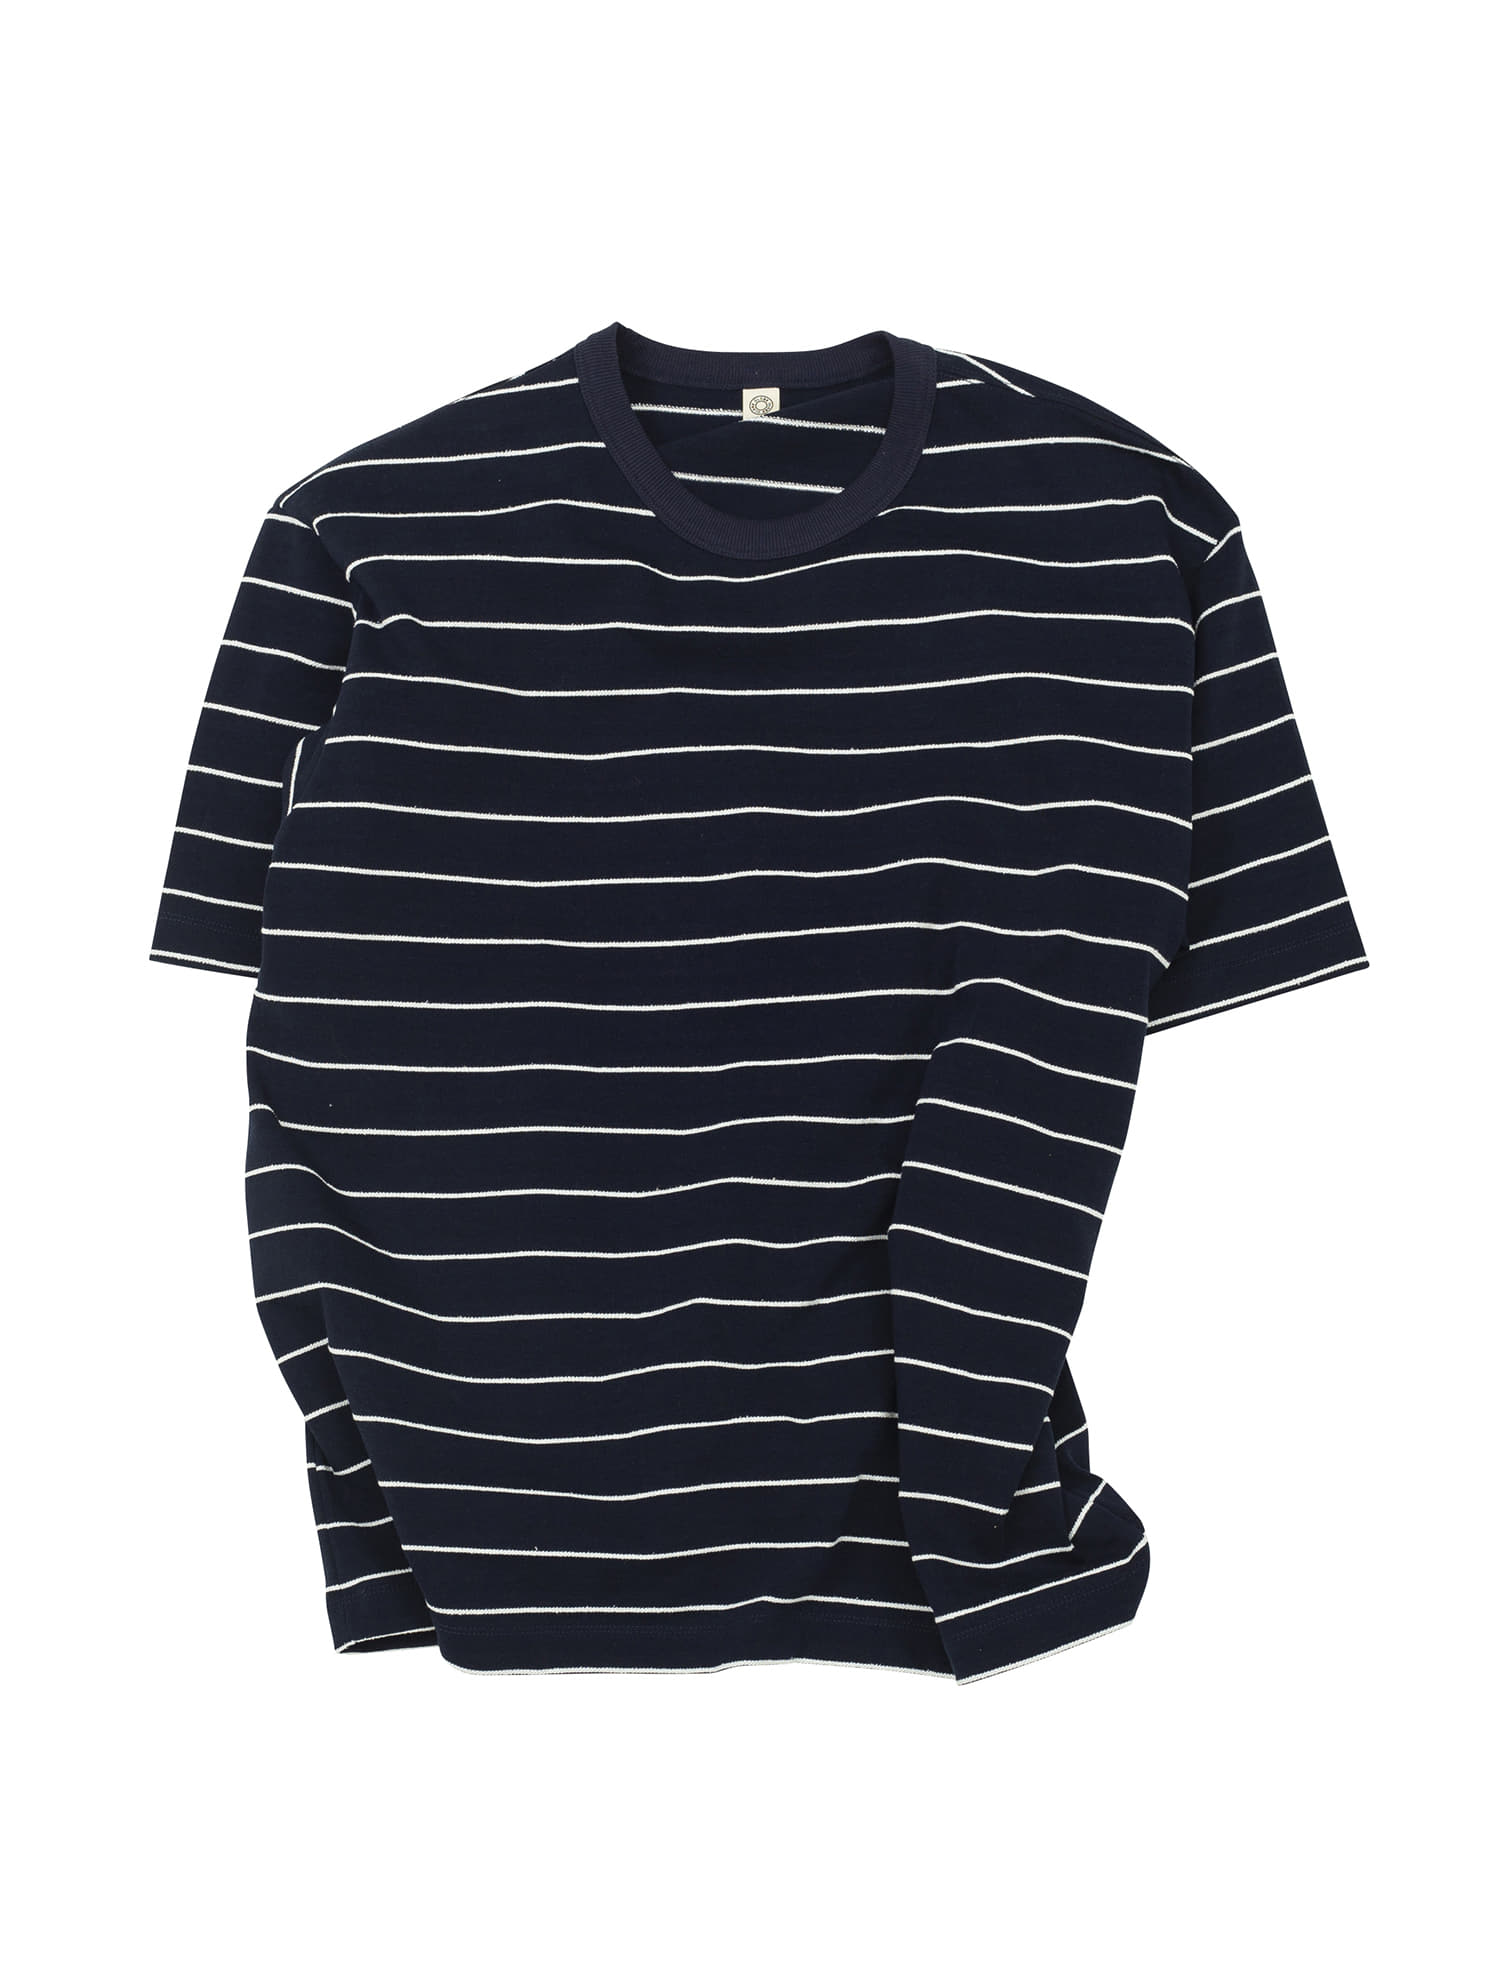 [올드비]  ATT COTTON BASQUE SHIRT NAVY